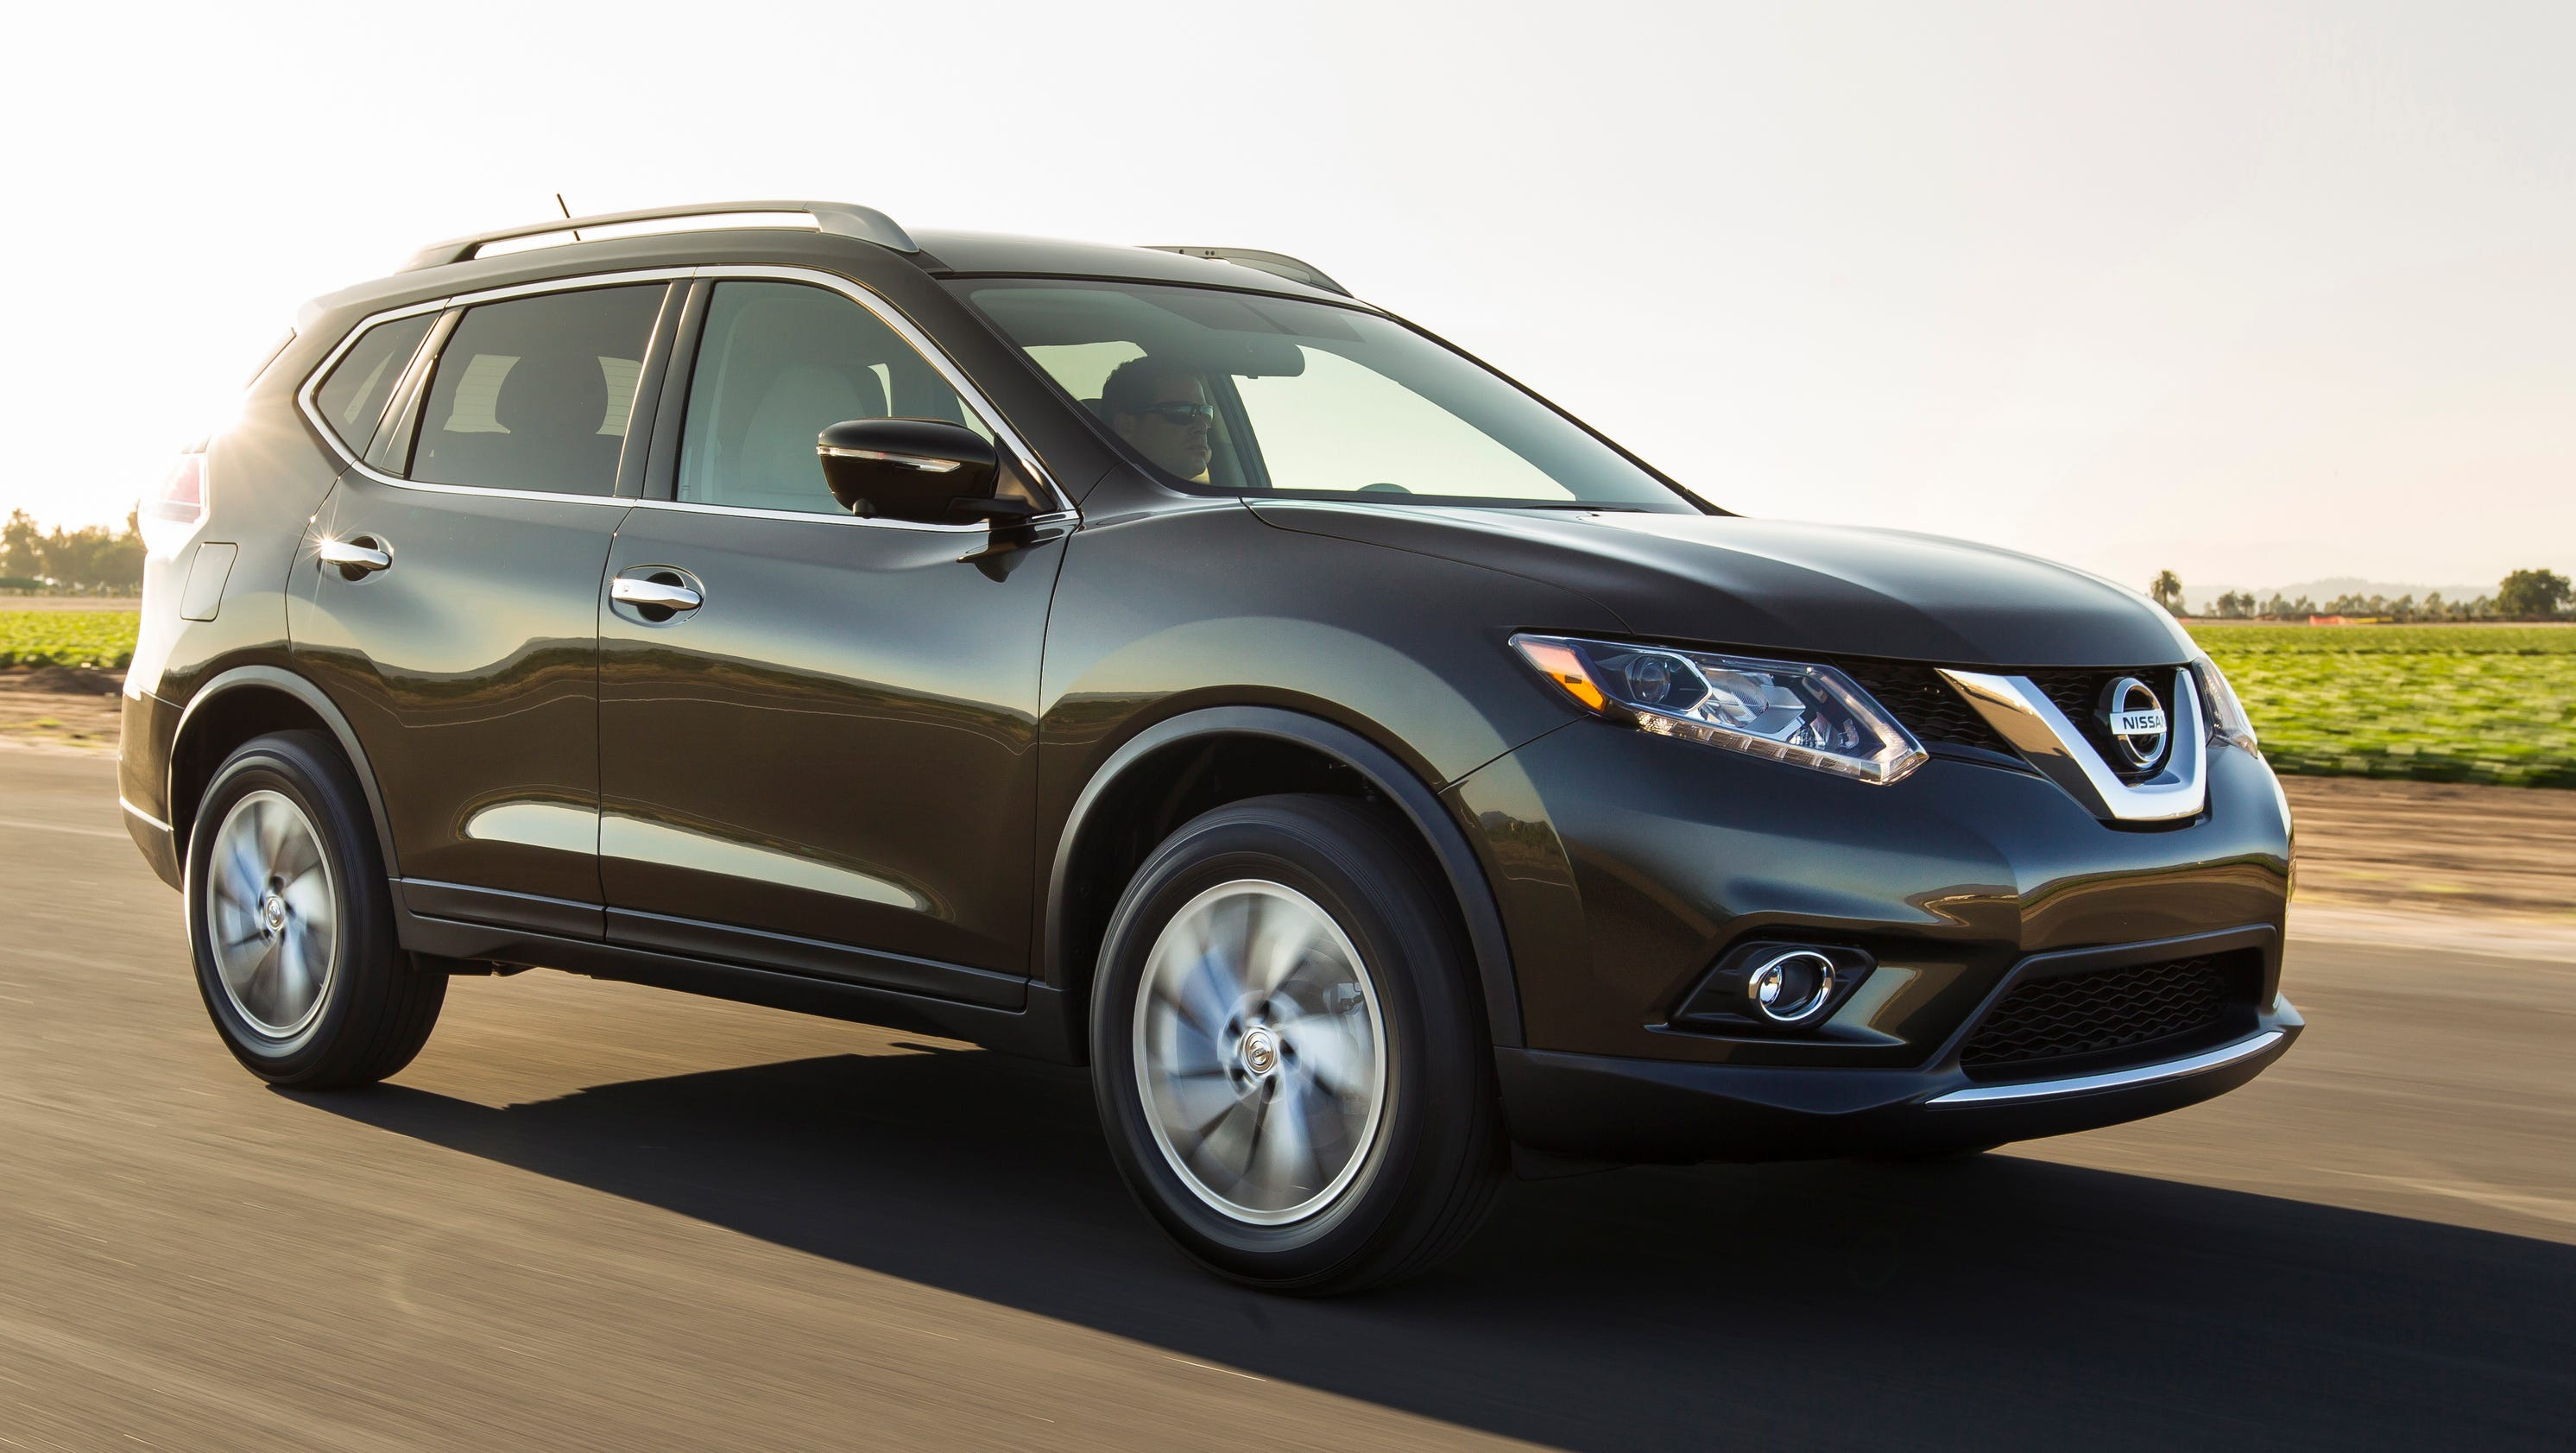 Nissan remakes Rogue, for the better